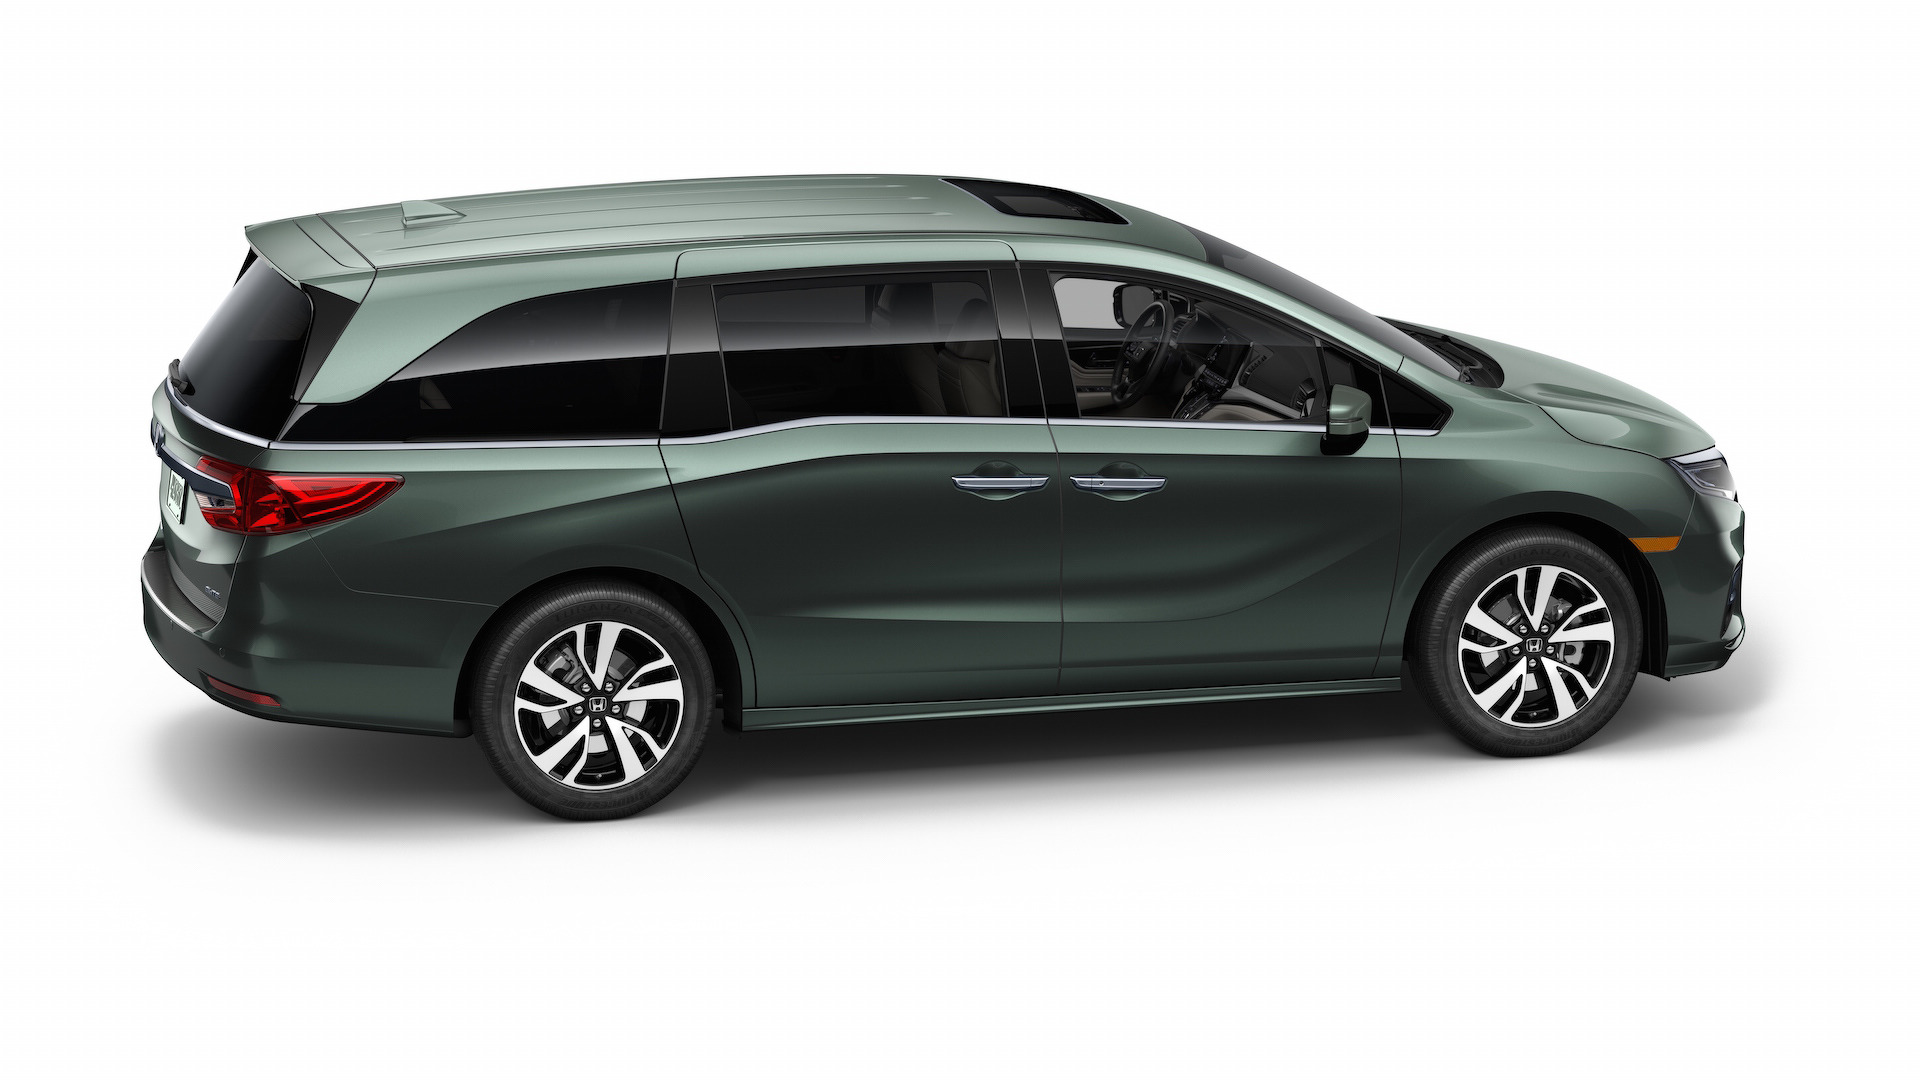 specs date honda odyssey release car price and